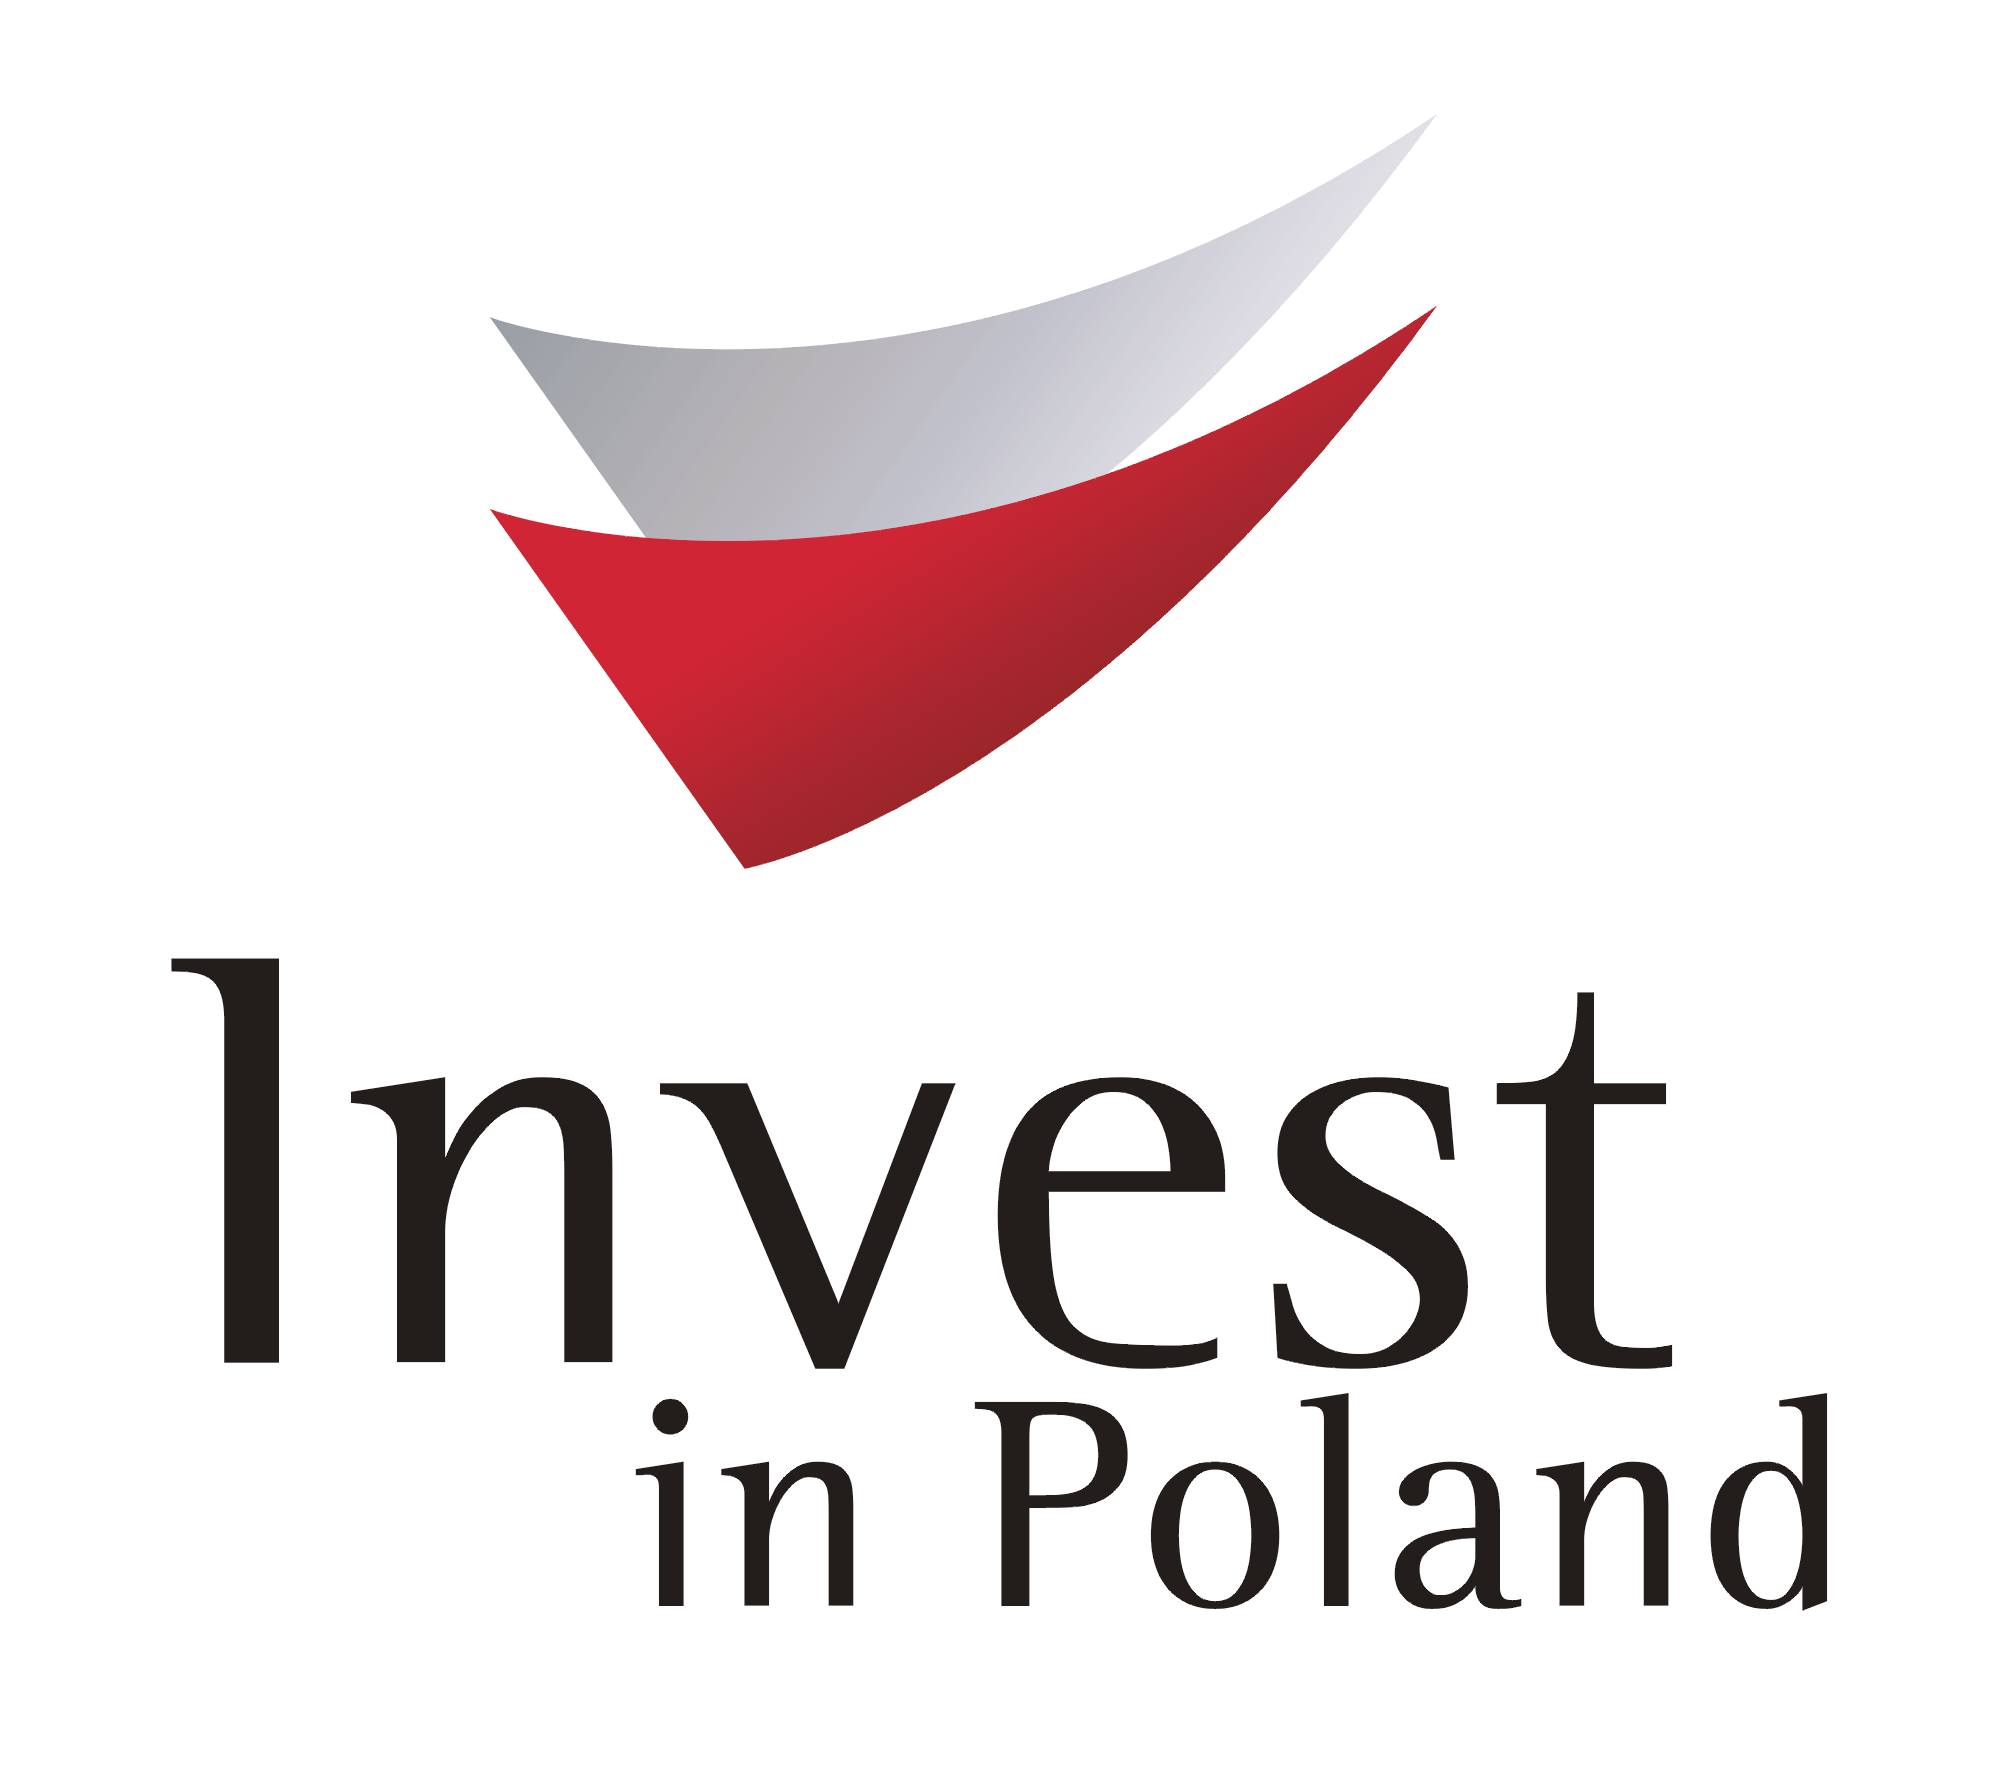 logo_Invest.png